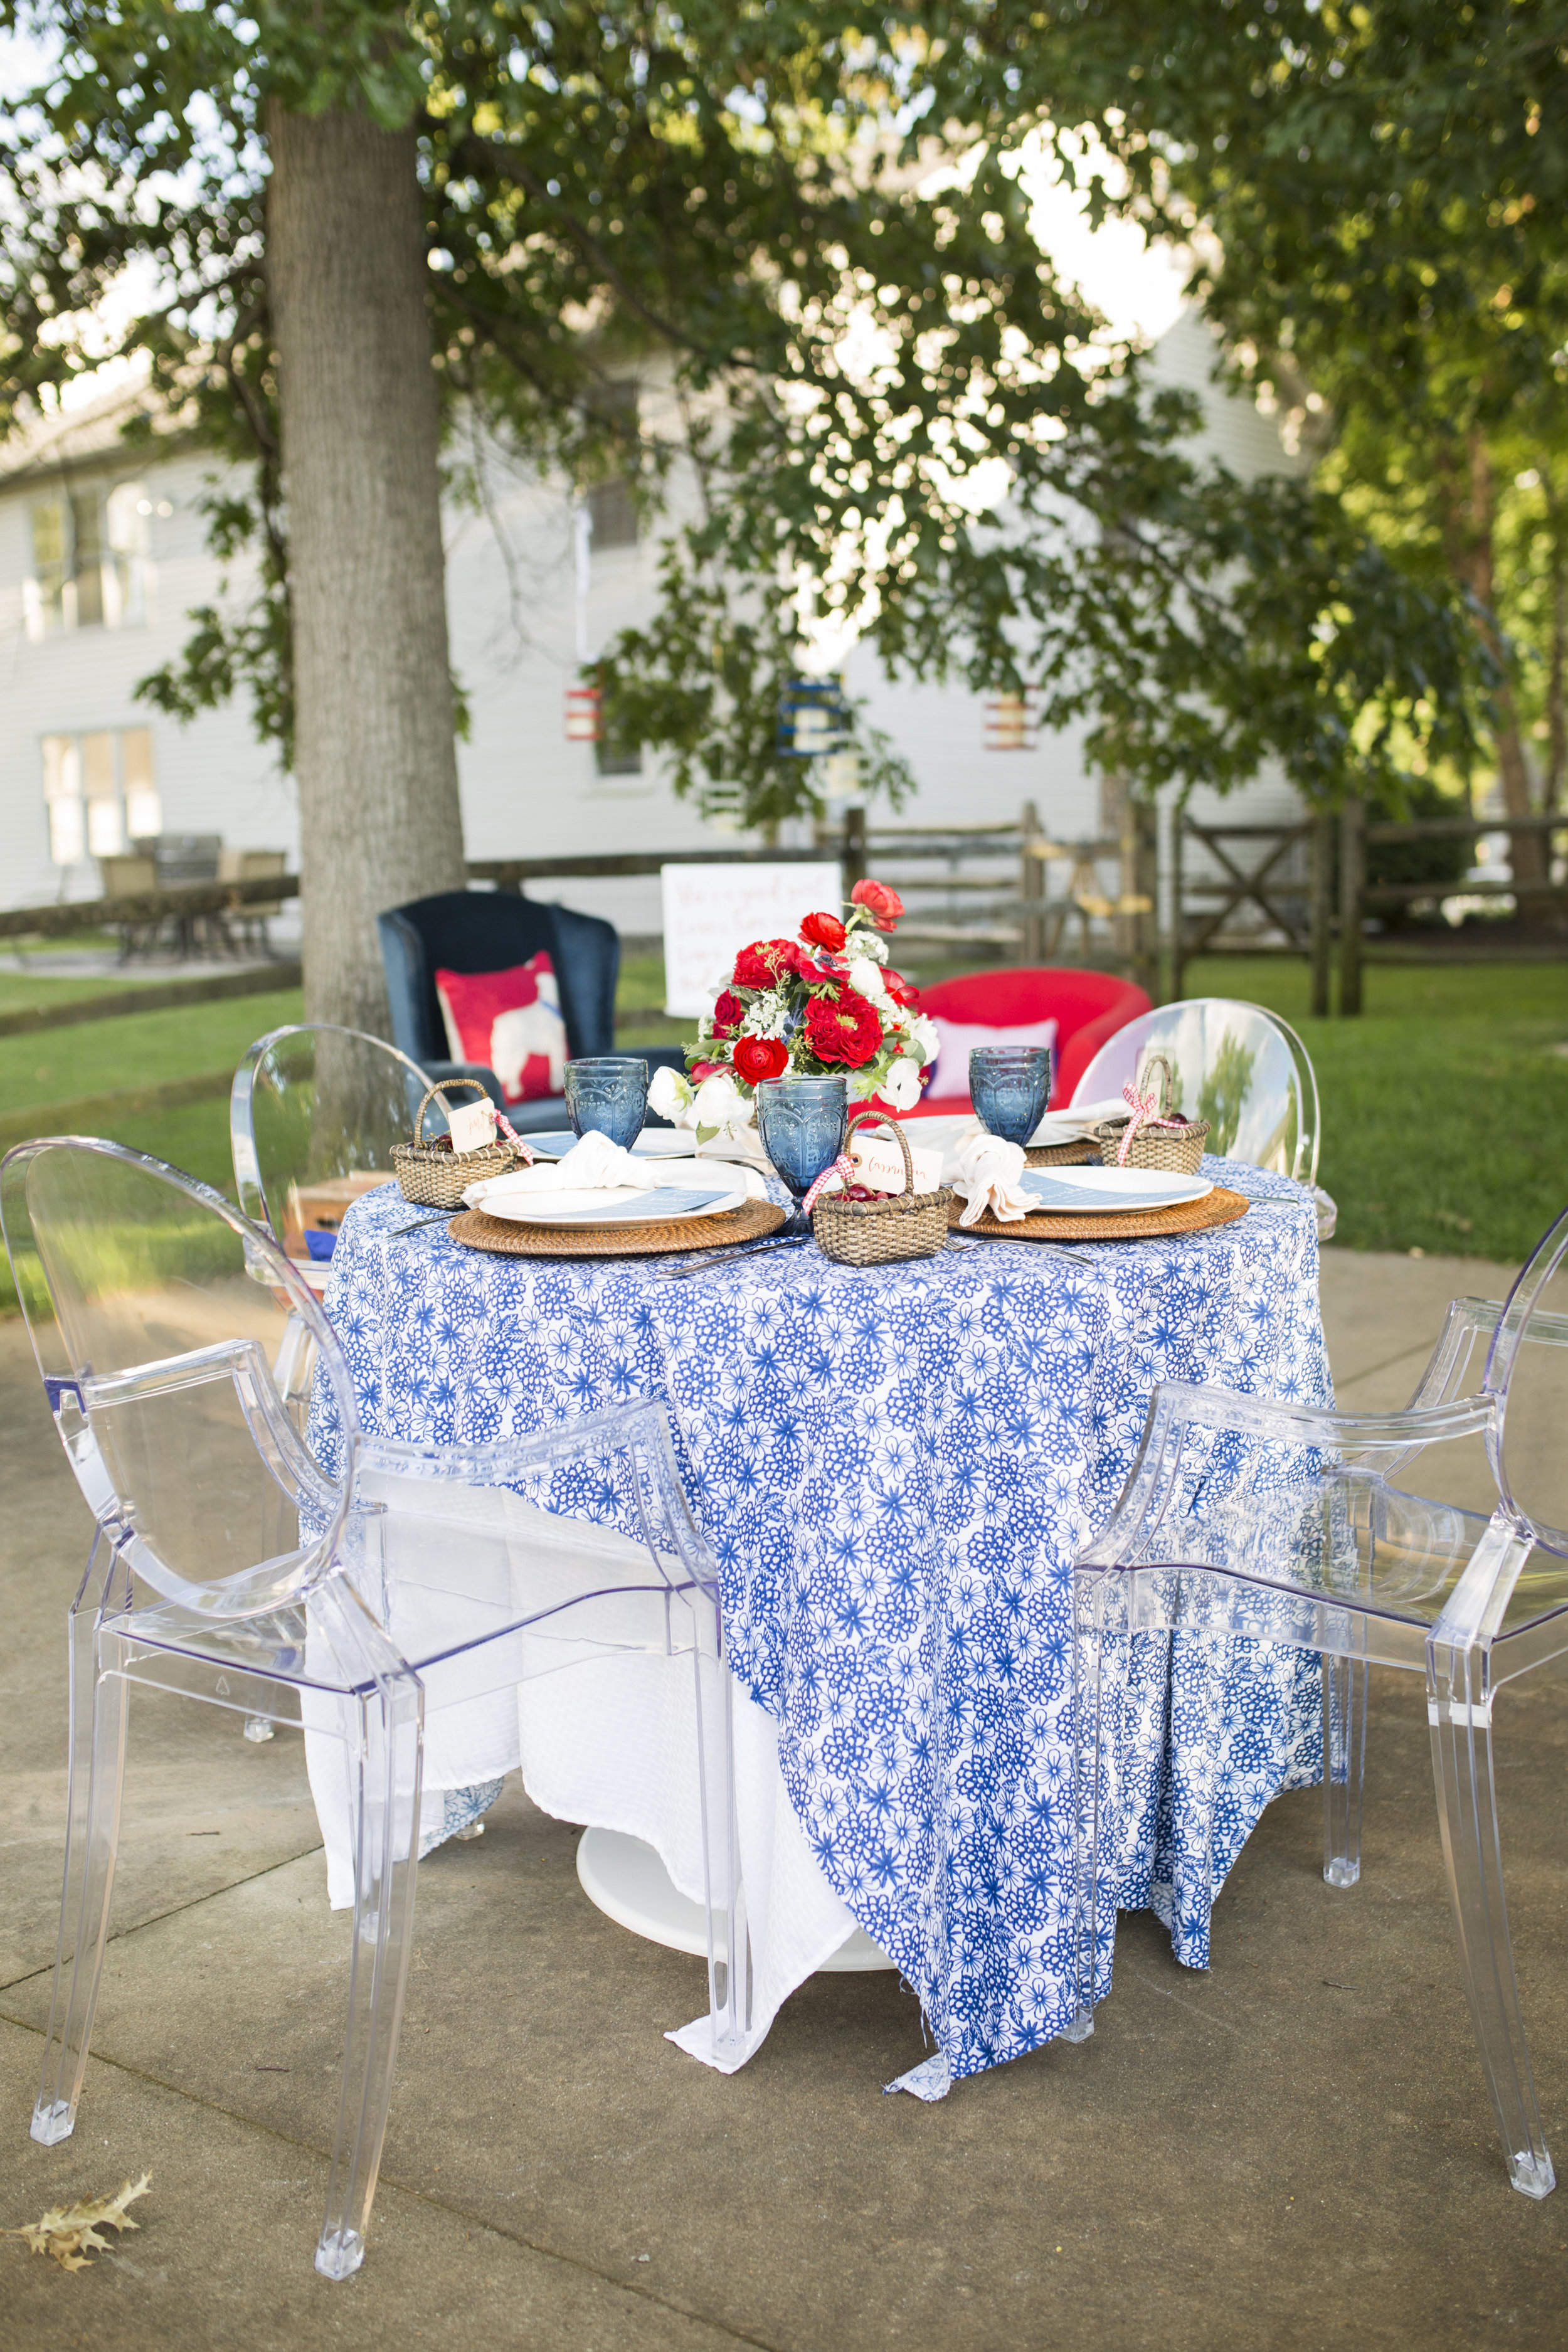 Stylish Fourth of Idea Party Decor & Entertaining Ideas by Cassandra Clair of Event Prep